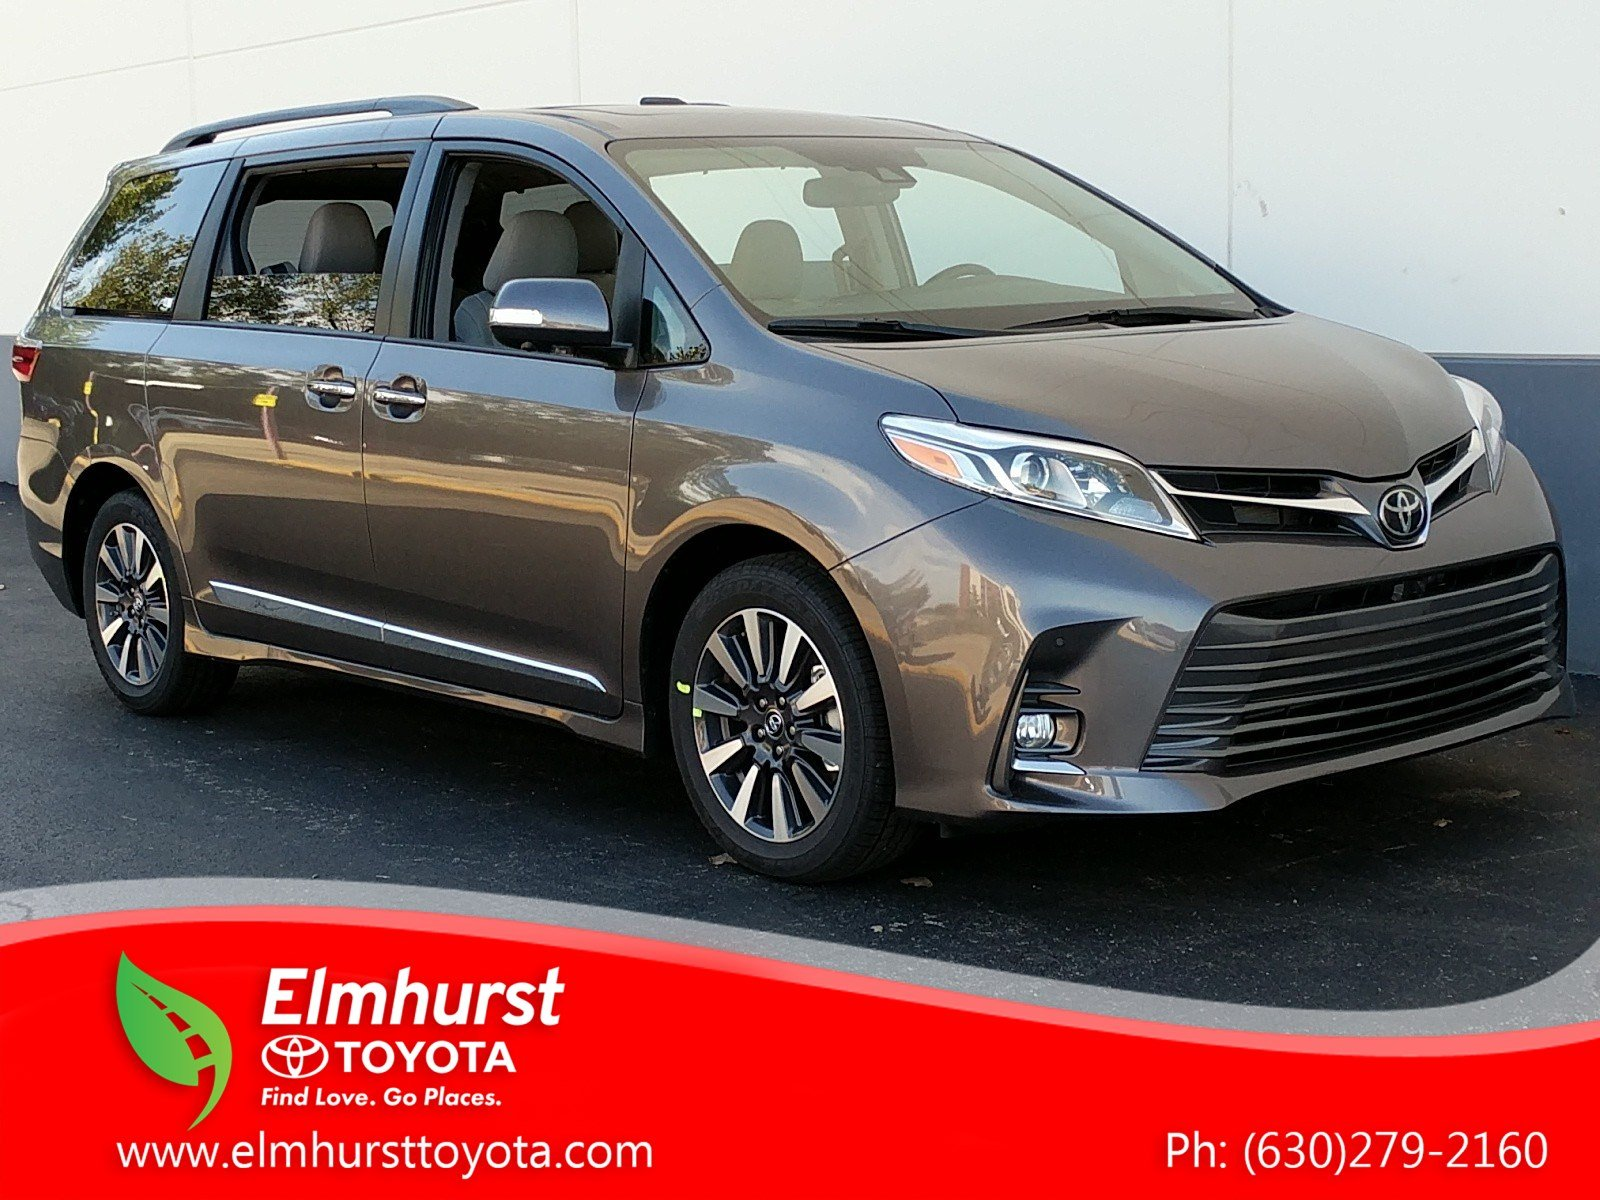 Toyota Sienna Service Manual: Driver Side Seat Belt Warning Light does not Operate